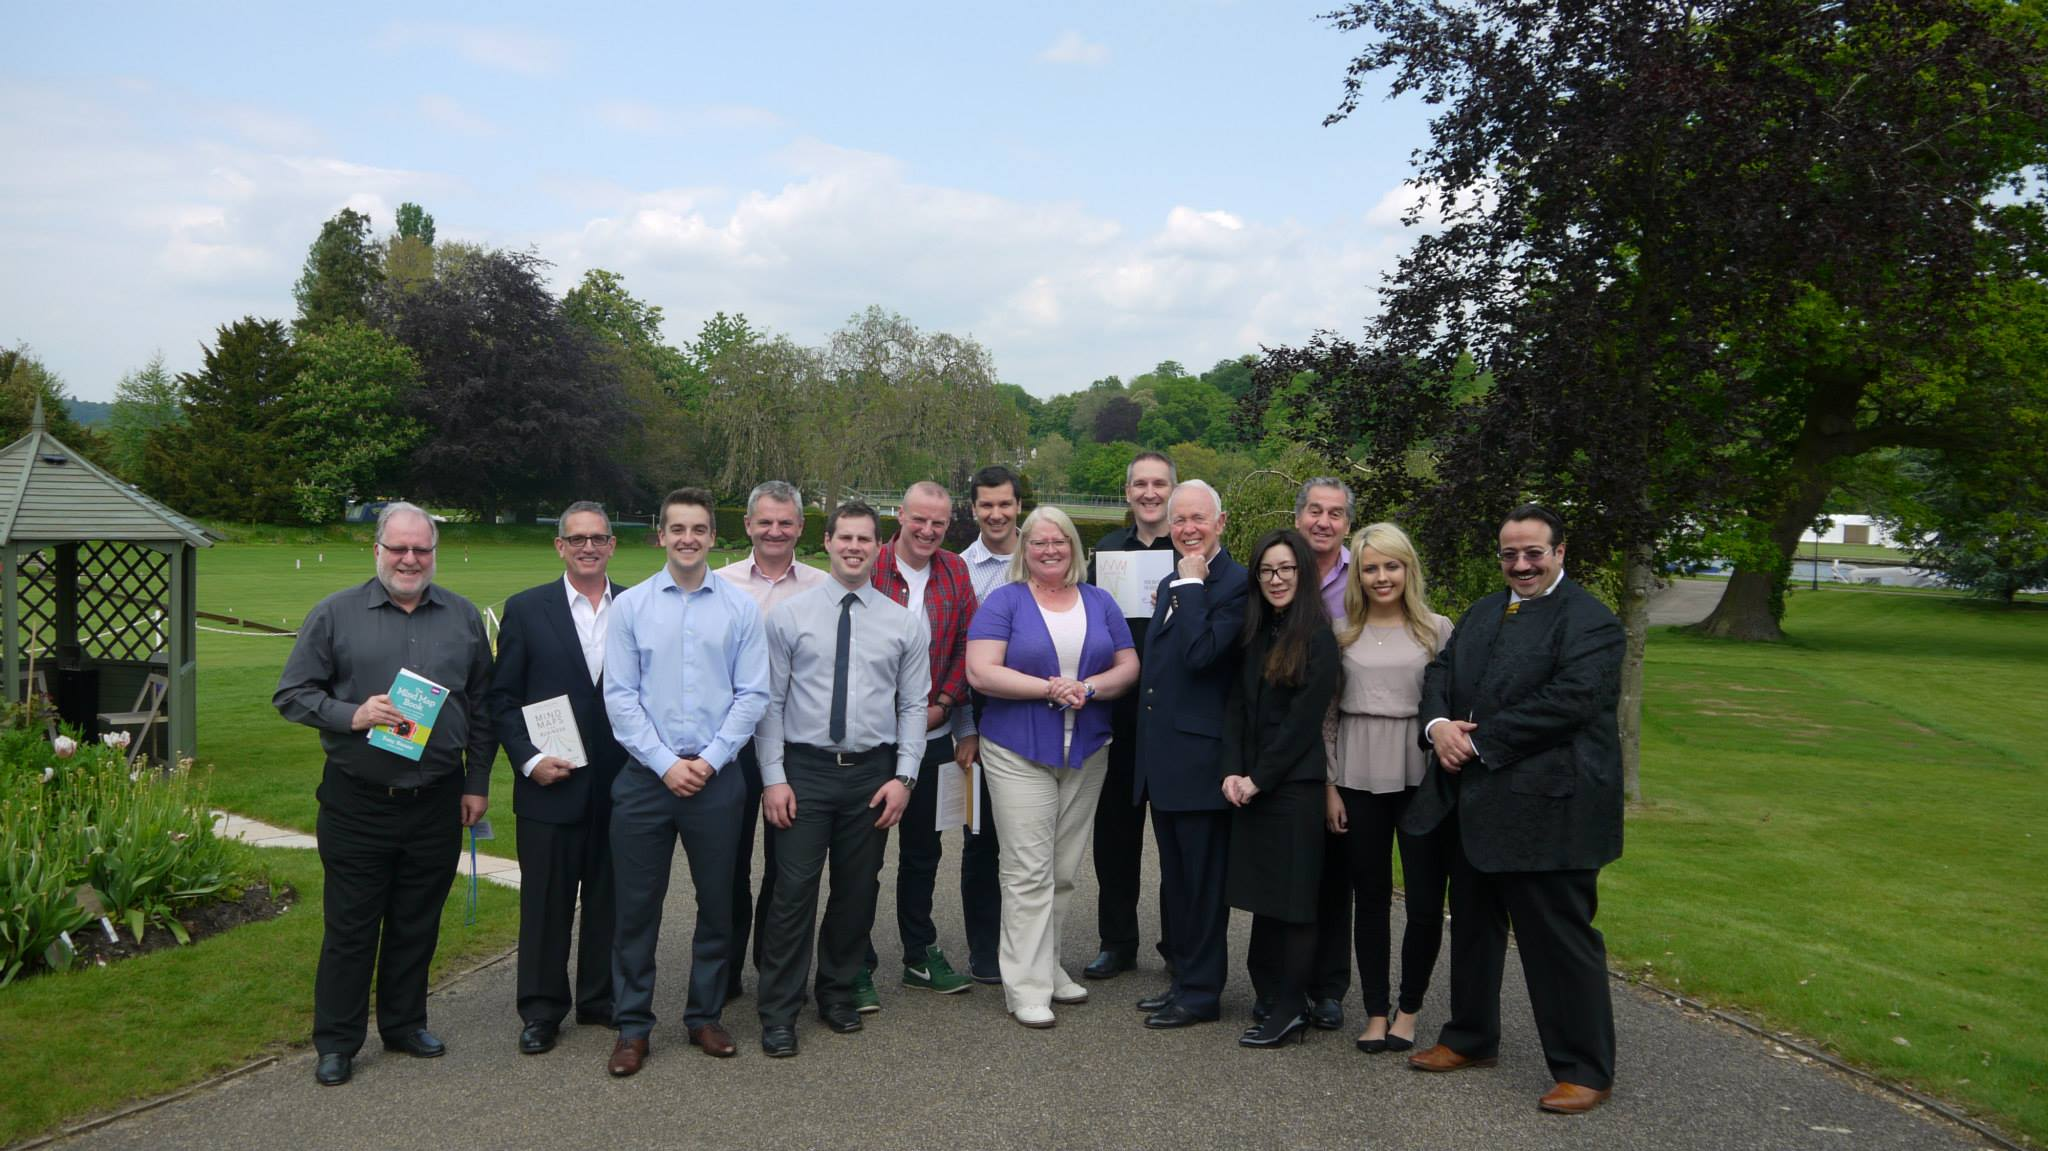 Group photo of the delegates from the Mind Mapping course, Henley-on-Thames